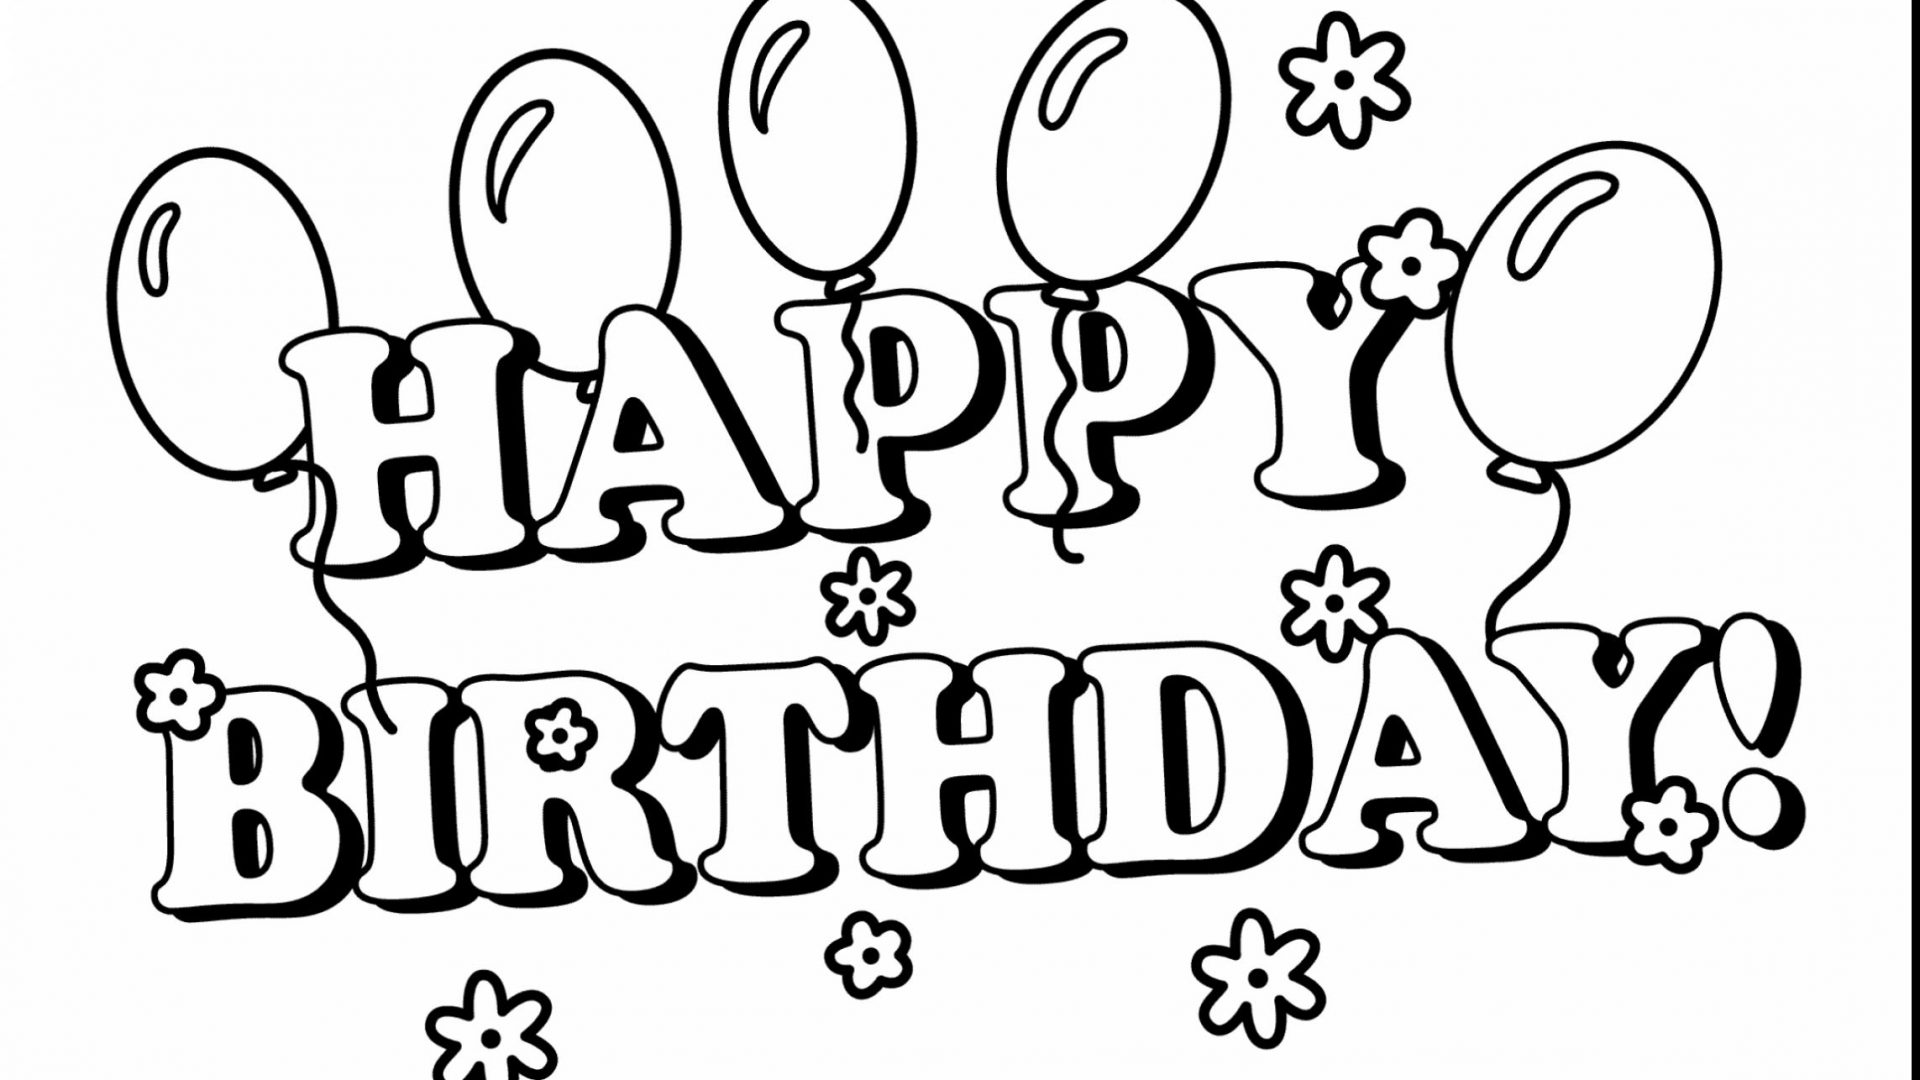 coloring book happy birthday ; coloring-book-fancy-happy-birthday-pages-about-surprising-printable-great-cake-1920x1080-hello-kitty-and-kids-size-19